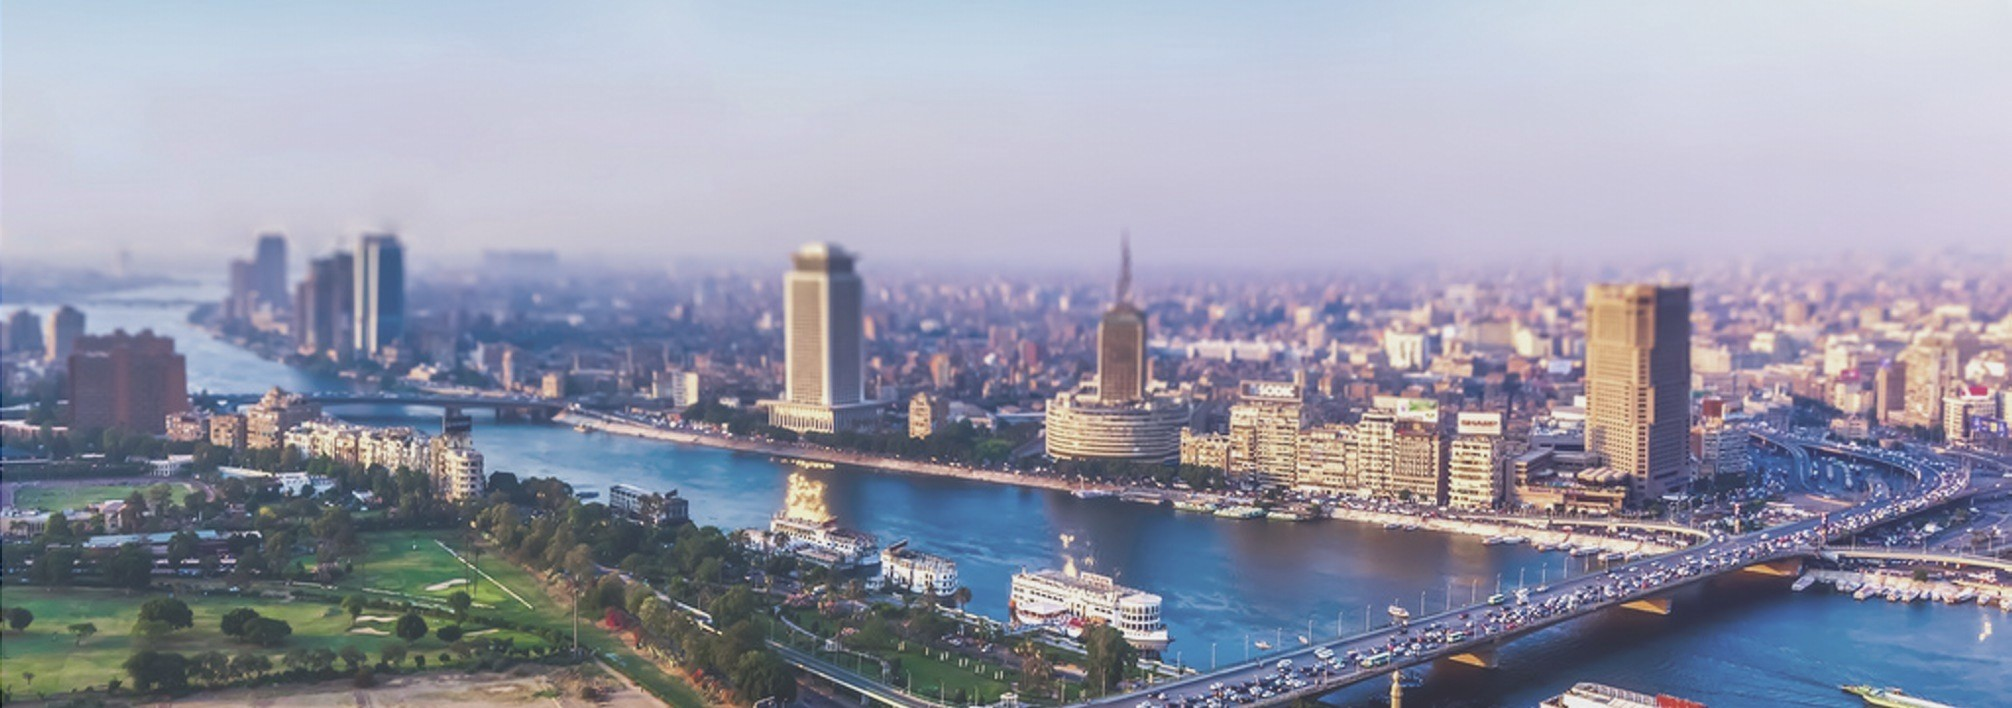 Communique: Federation of Egyptian Industries (FEI) joins the Global Business Coalition